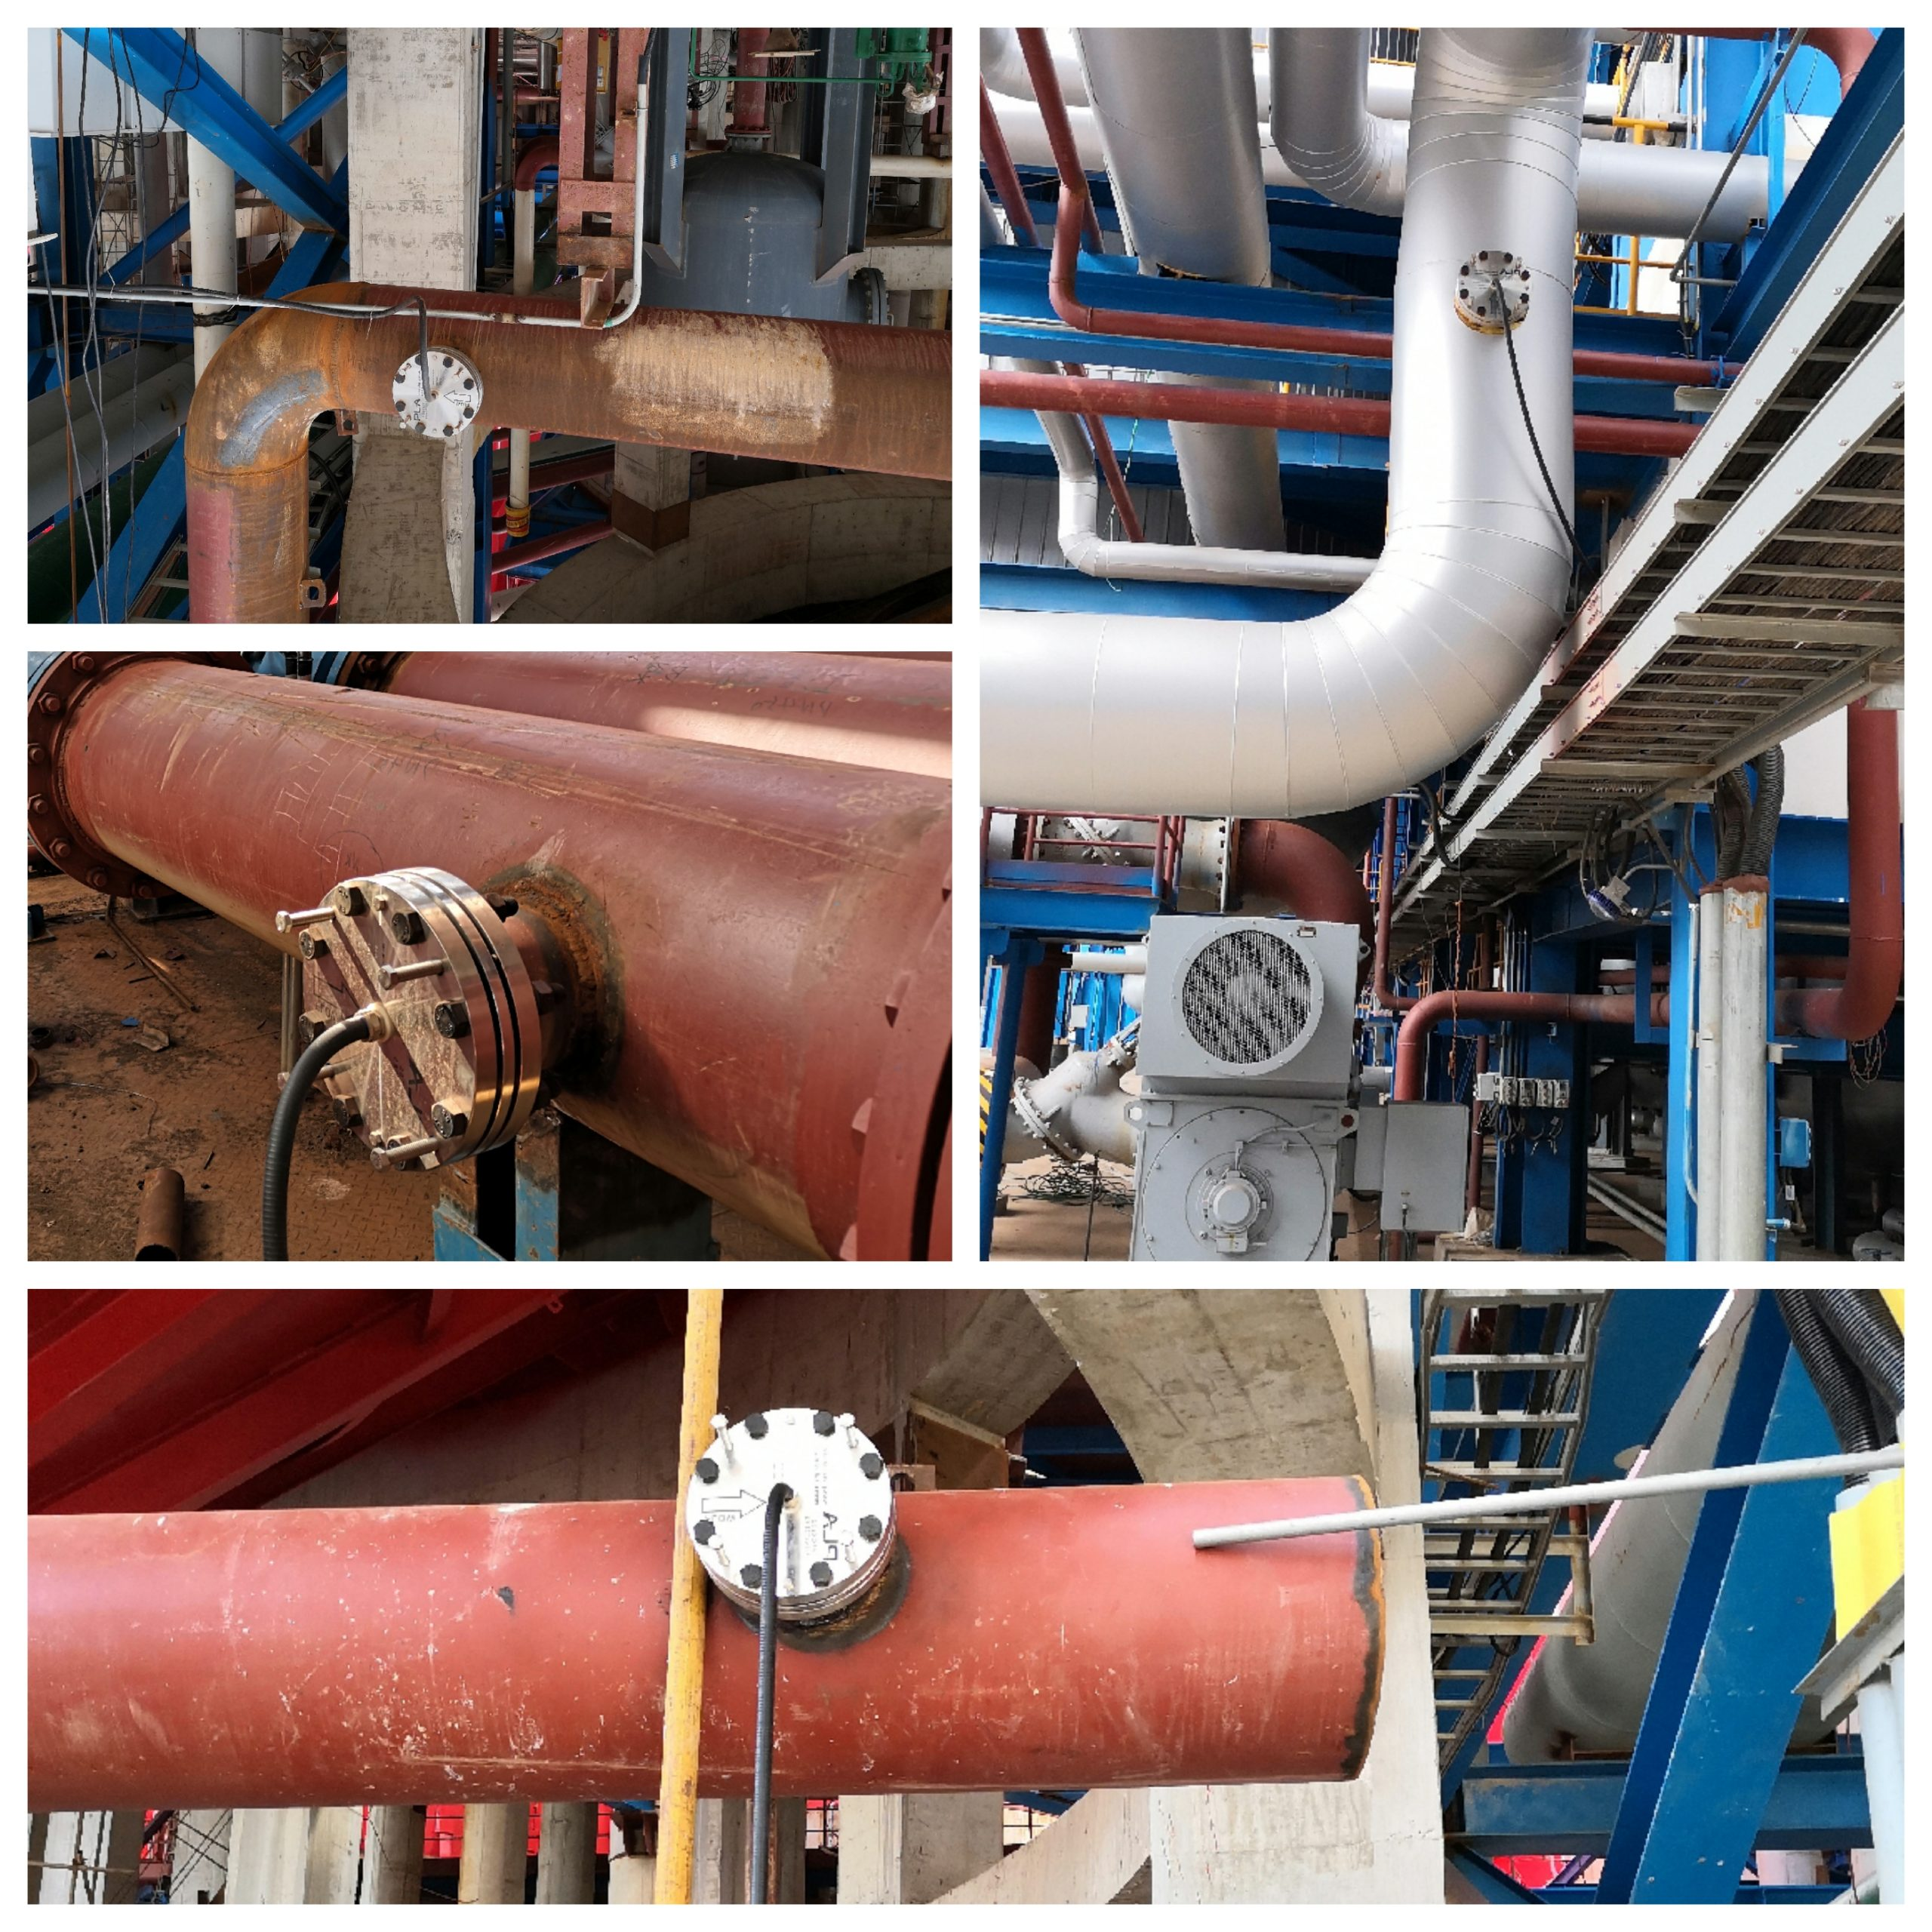 AL-DCIK A/C ratio meters installed at Chalco's plant